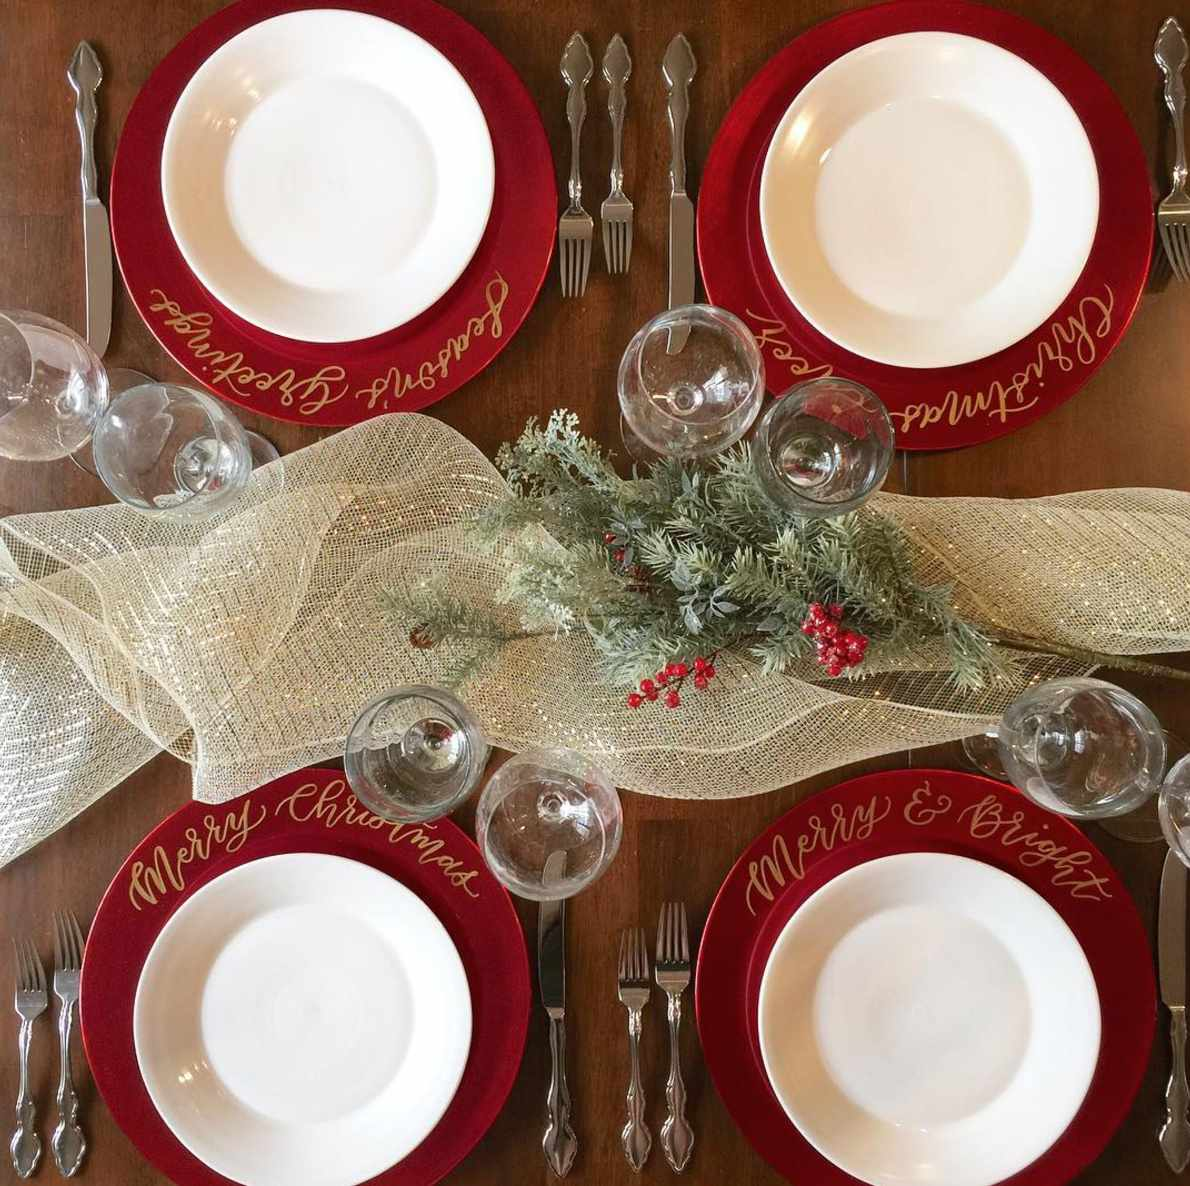 Fabulous 22 Pretty Christmas Table Decorations And Settings Download Free Architecture Designs Grimeyleaguecom